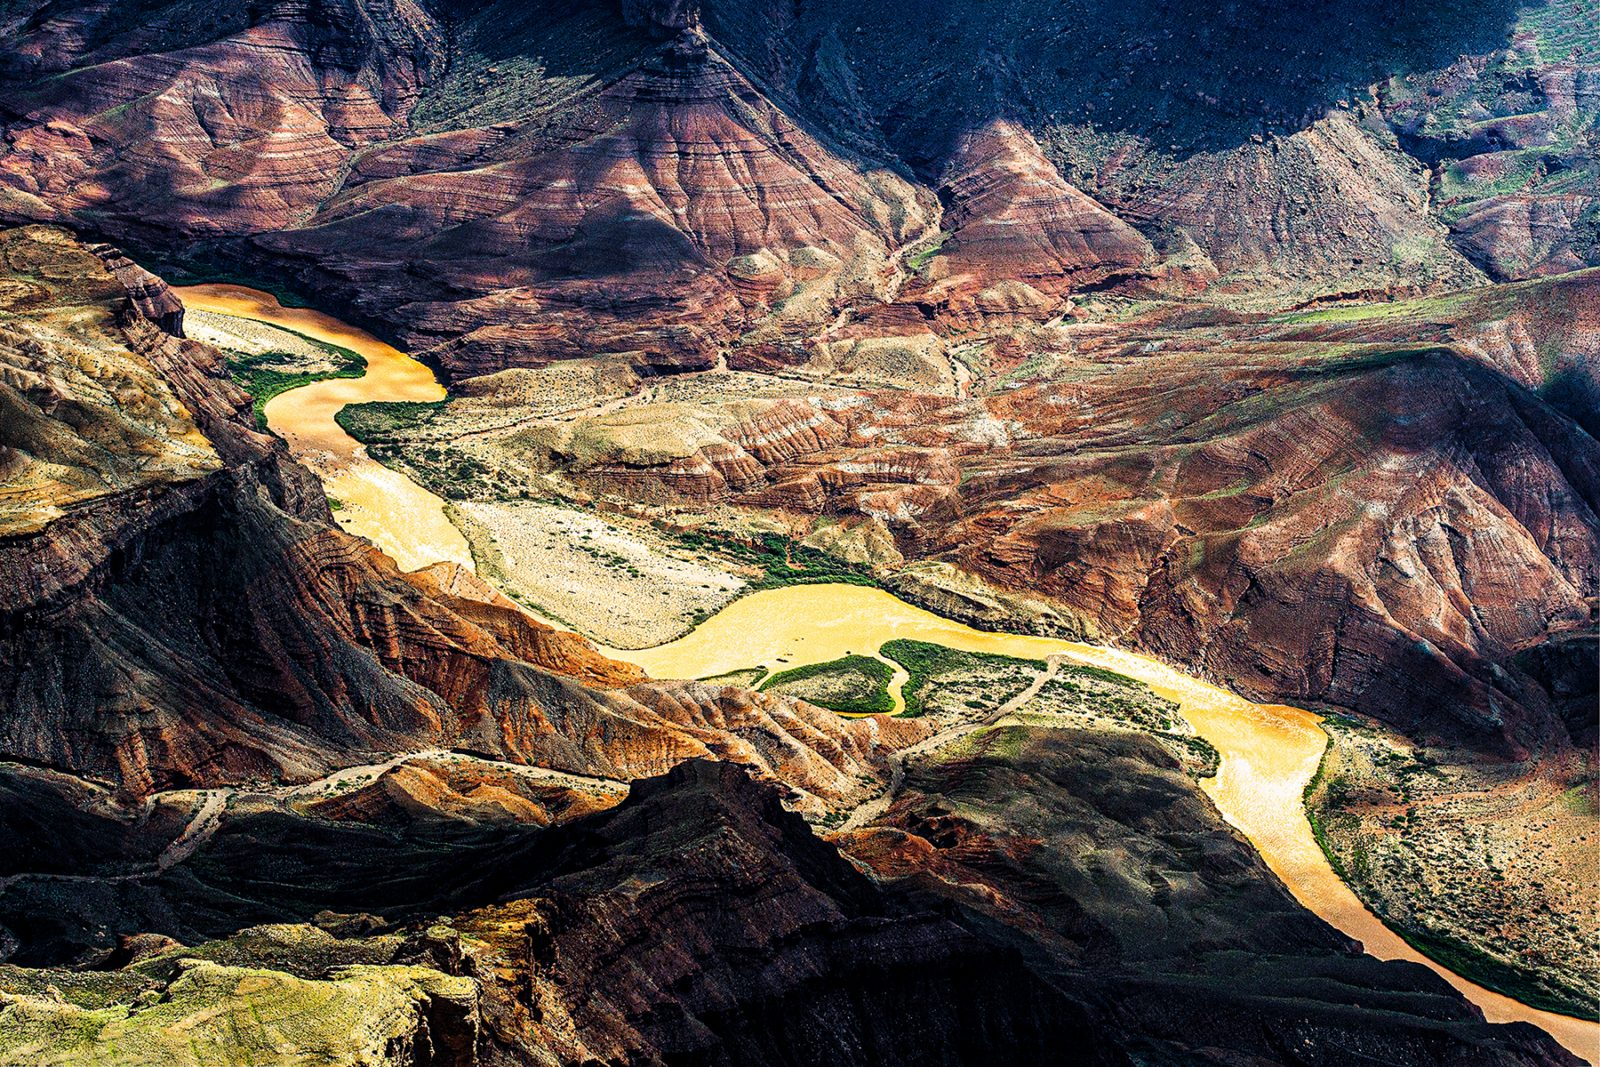 The canyon's meandering river